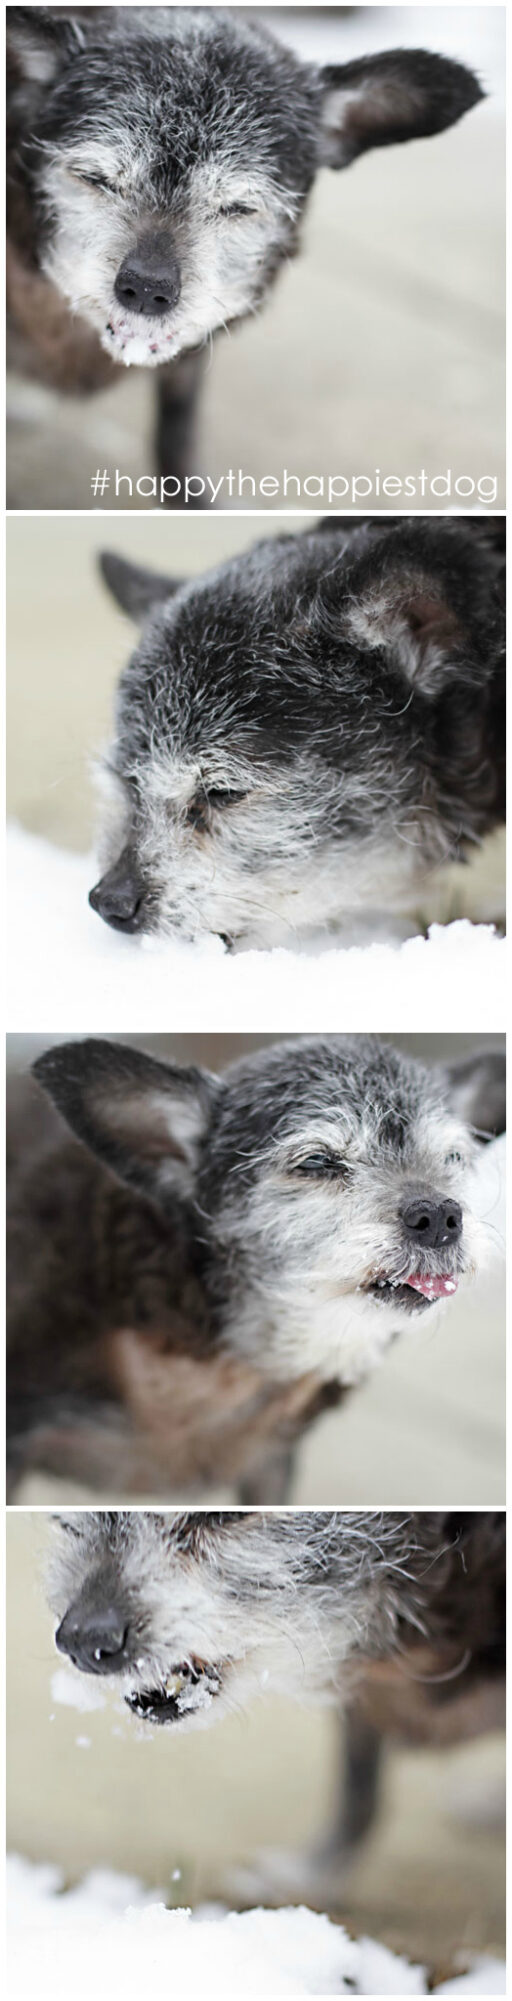 Happy the Happiest Dog - Senior Rescue - Dog Adoption